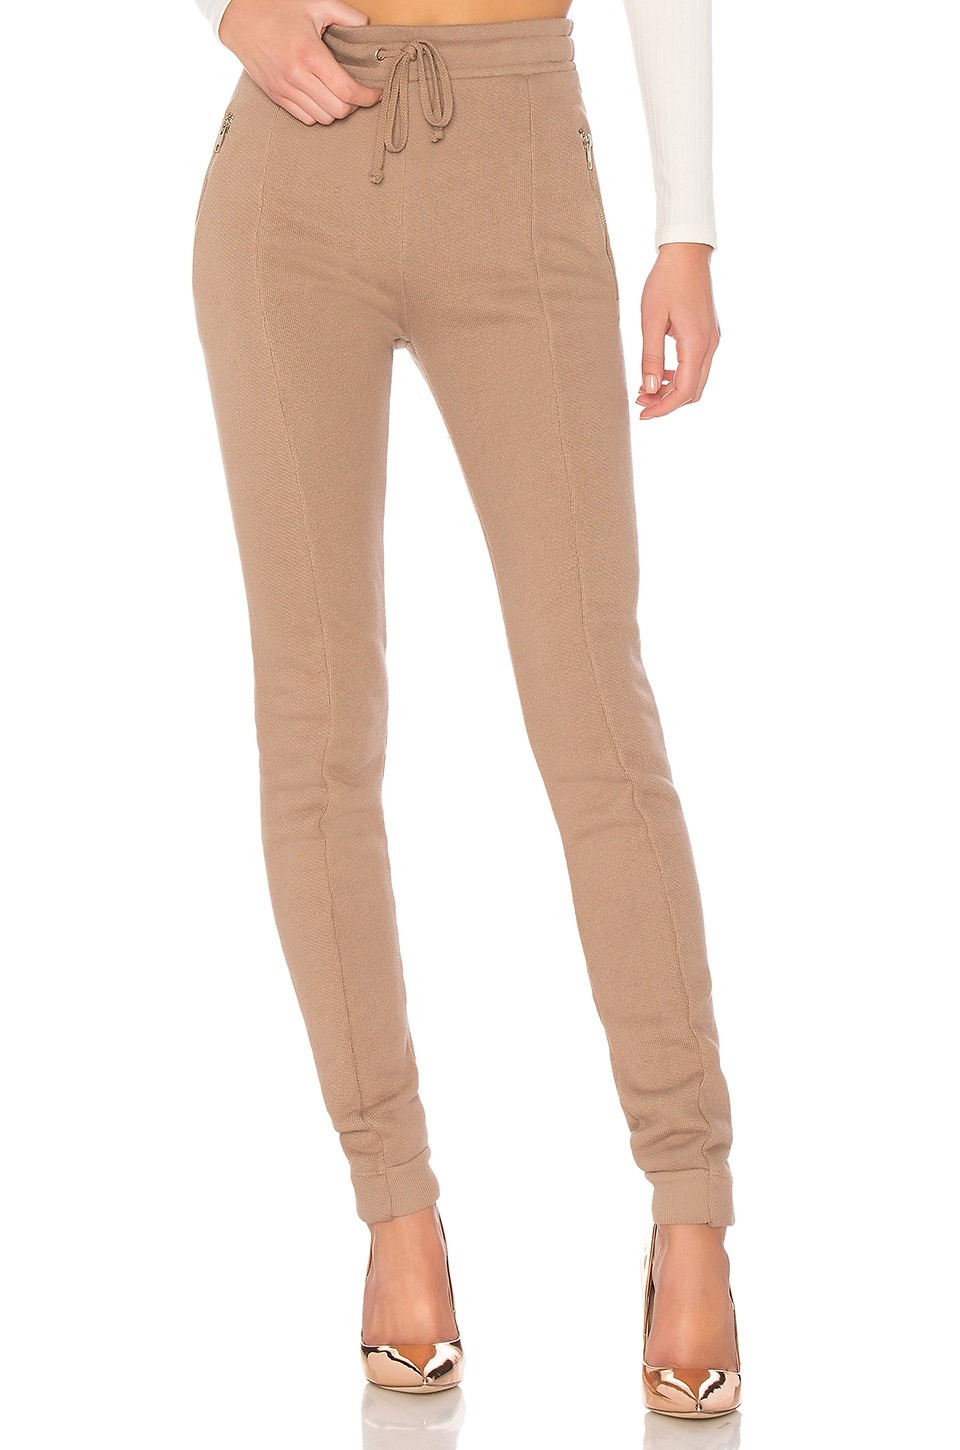 Wildfox Couture Solid Zipper Sweatpant in Umber Grey